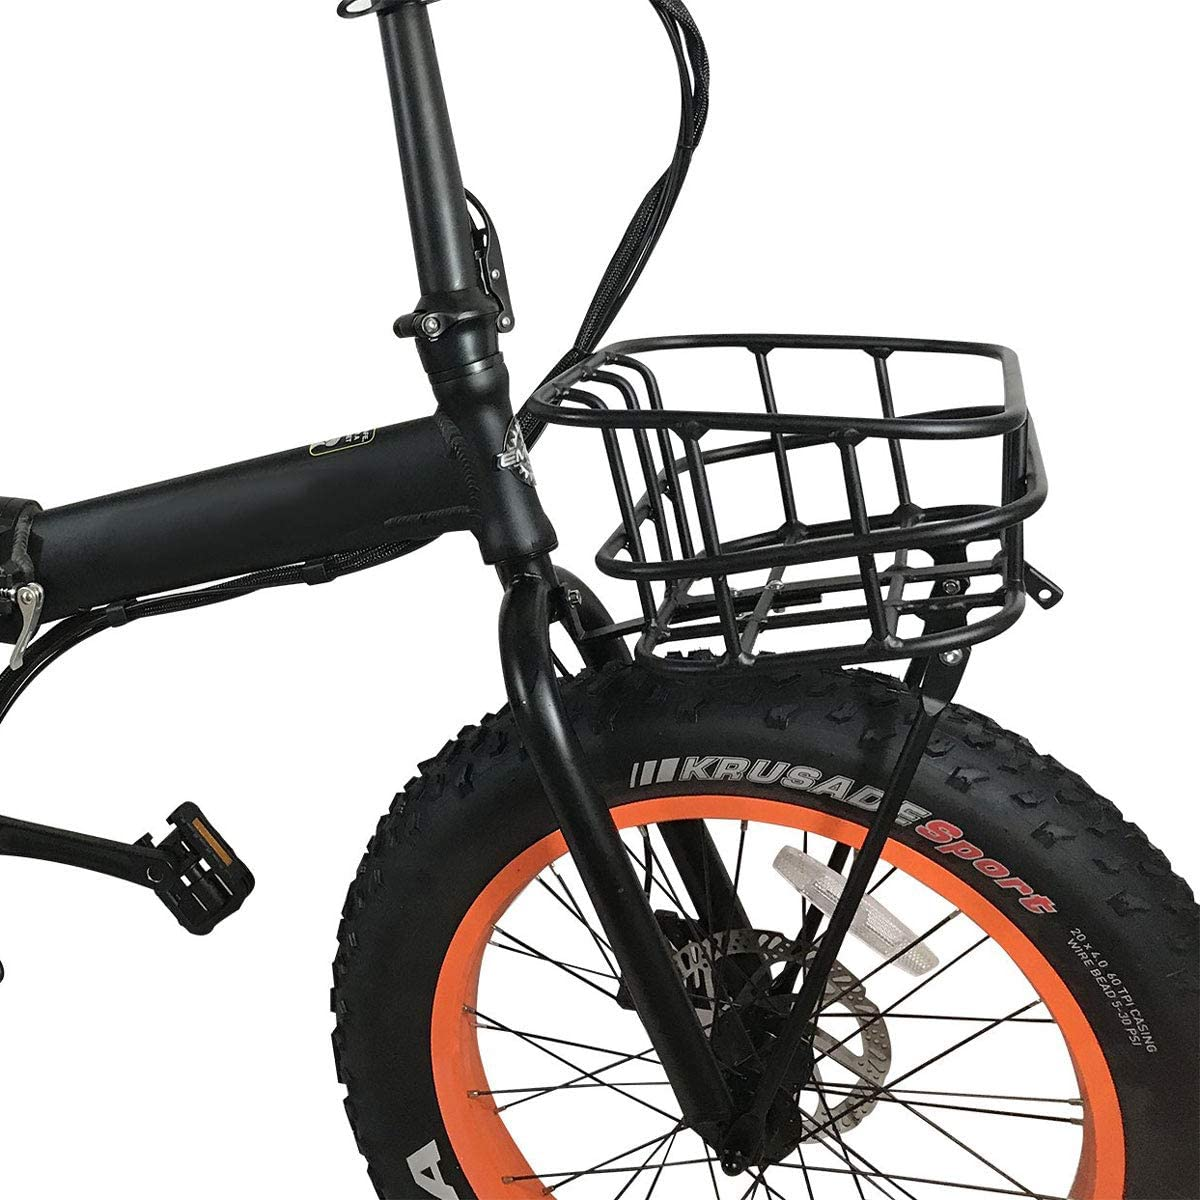 Holds up to 55Lb Voltech Metal Standard Front Basket for Electric Bikes and Most Cycling Bike Aluminum Alloy Frame Easy Install